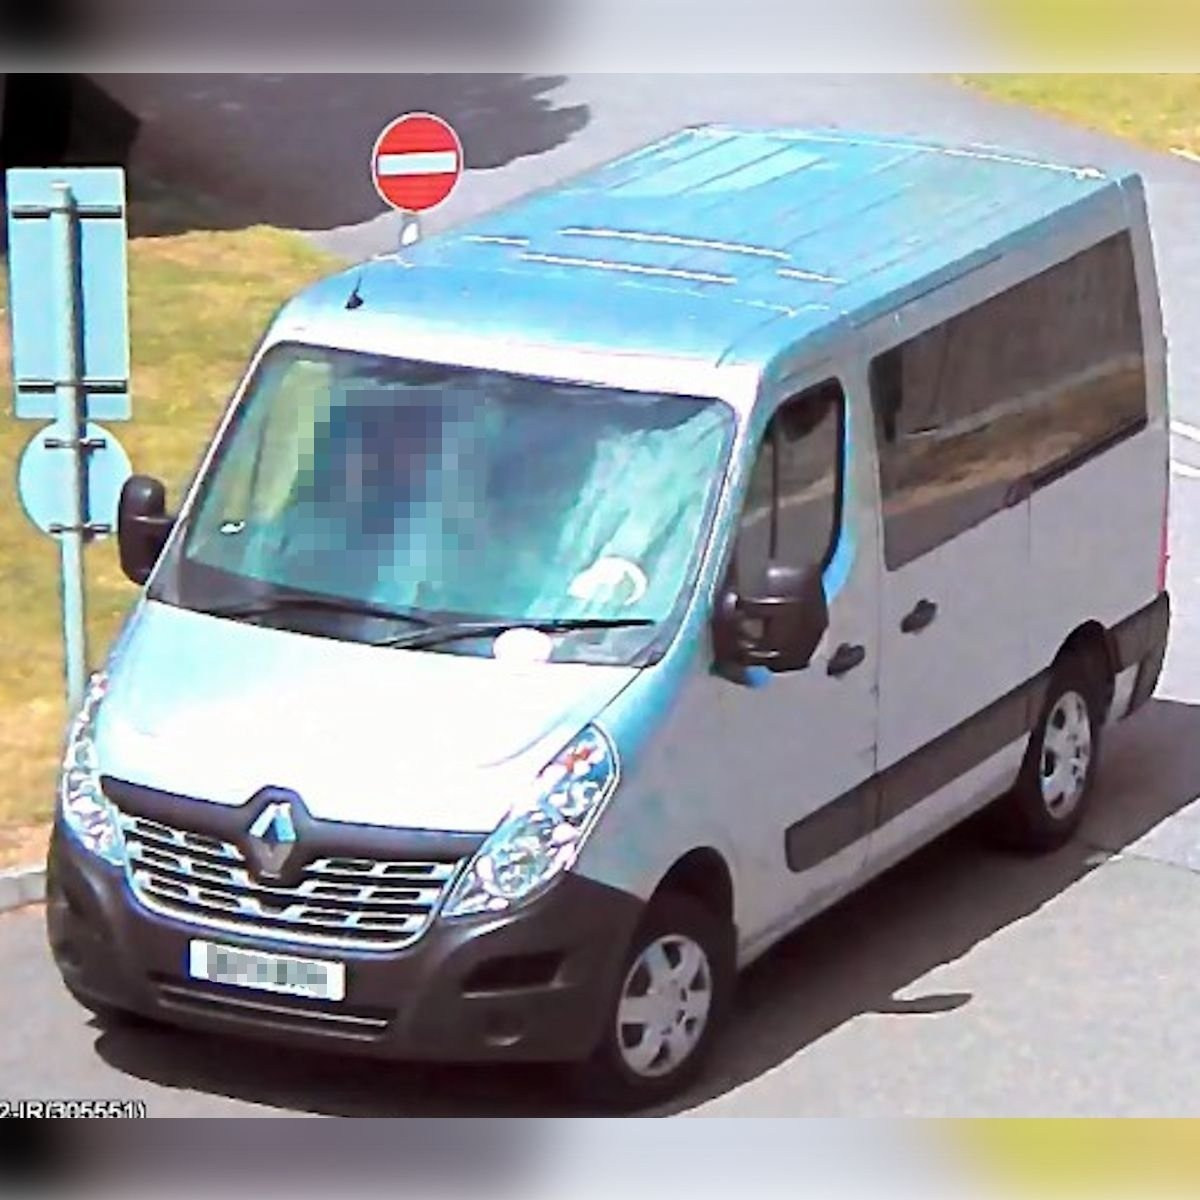 If you have CCTV or dashcam footage from the Shinewater or seafront areas of #Eastbourne between 11pm on Saturday and 2am on Sunday does it show this van? It could be very important in a murder enquiry. Find out how to upload it to us at https://t.co/dDS2D1ixXy https://t.co/p3CT24ca36